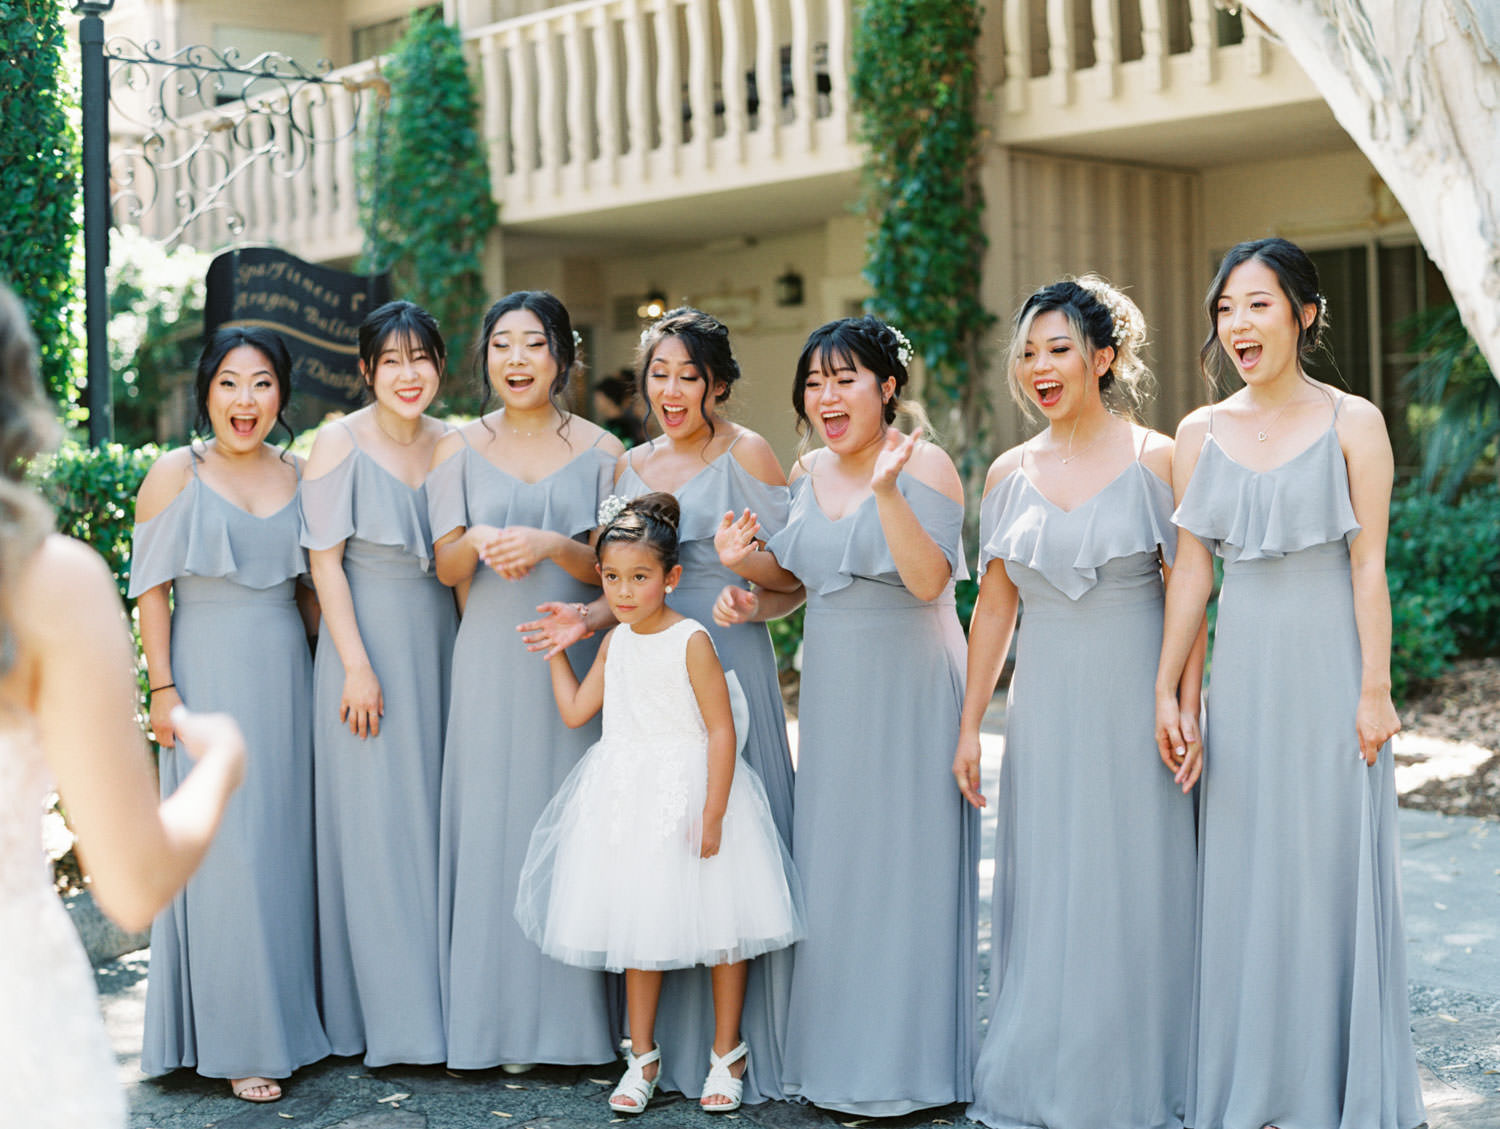 Bridesmaid first look with the bride. Bridesmaids in grey cut out sleeve gowns. Wedding at Rancho Bernardo Inn. Film photo by Cavin Elizabeth Photography